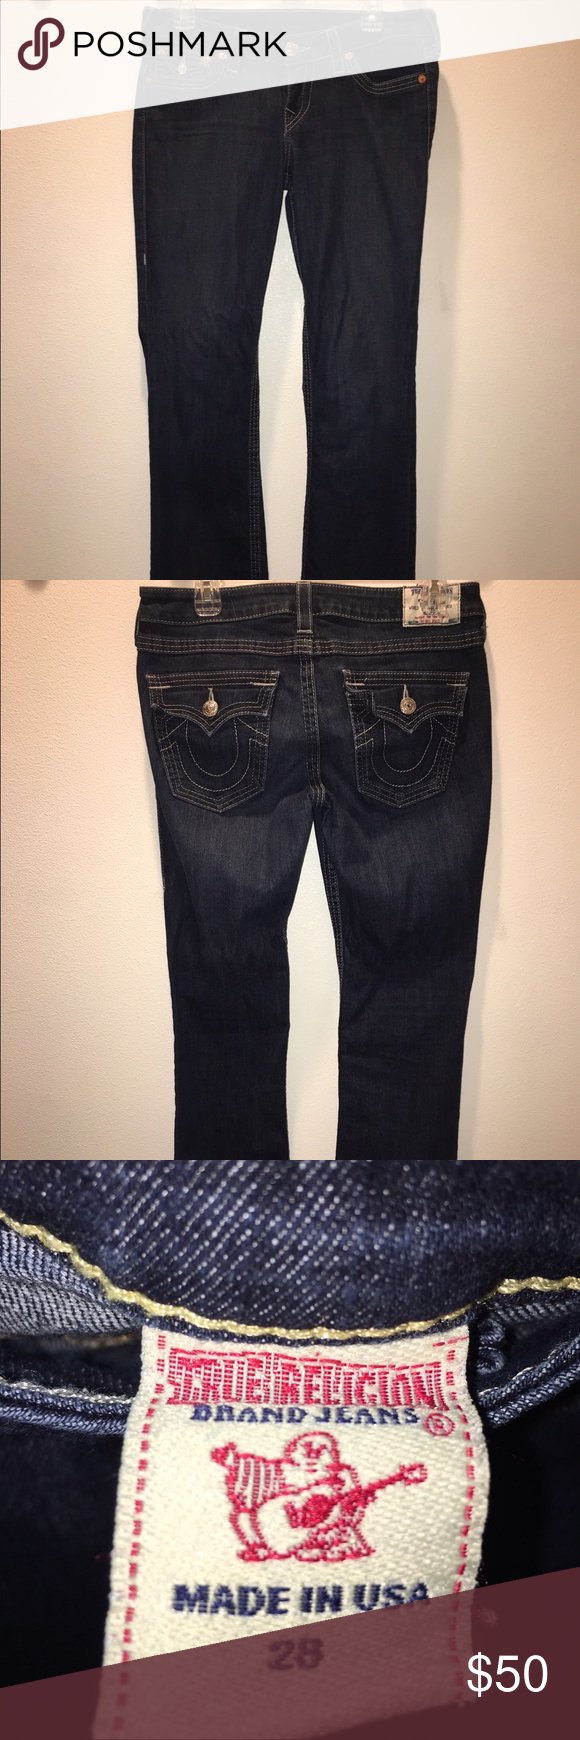 True Religion bootcut jeans Dark wash, gently used. Quite comfortable and stretchy. Very low rise, full length bootcut. True Religion Pants Boot Cut & Flare